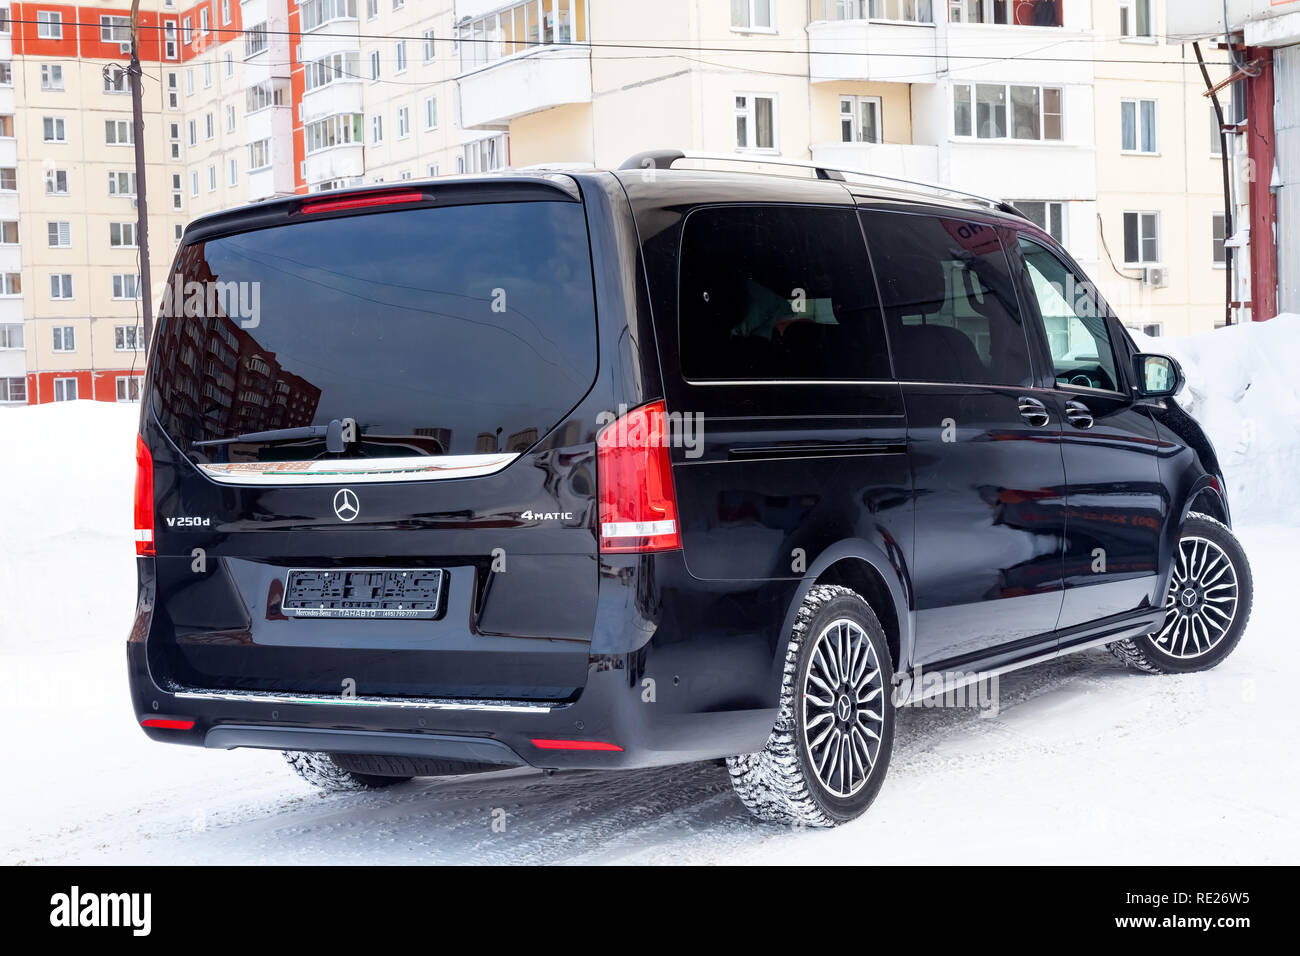 Novosibirsk, Russia - 08.01.2018: Rear view of new a expensive Mercedes Benz V-class minivan bumper and trunk of a car, a long black limousine, model  - Stock Image